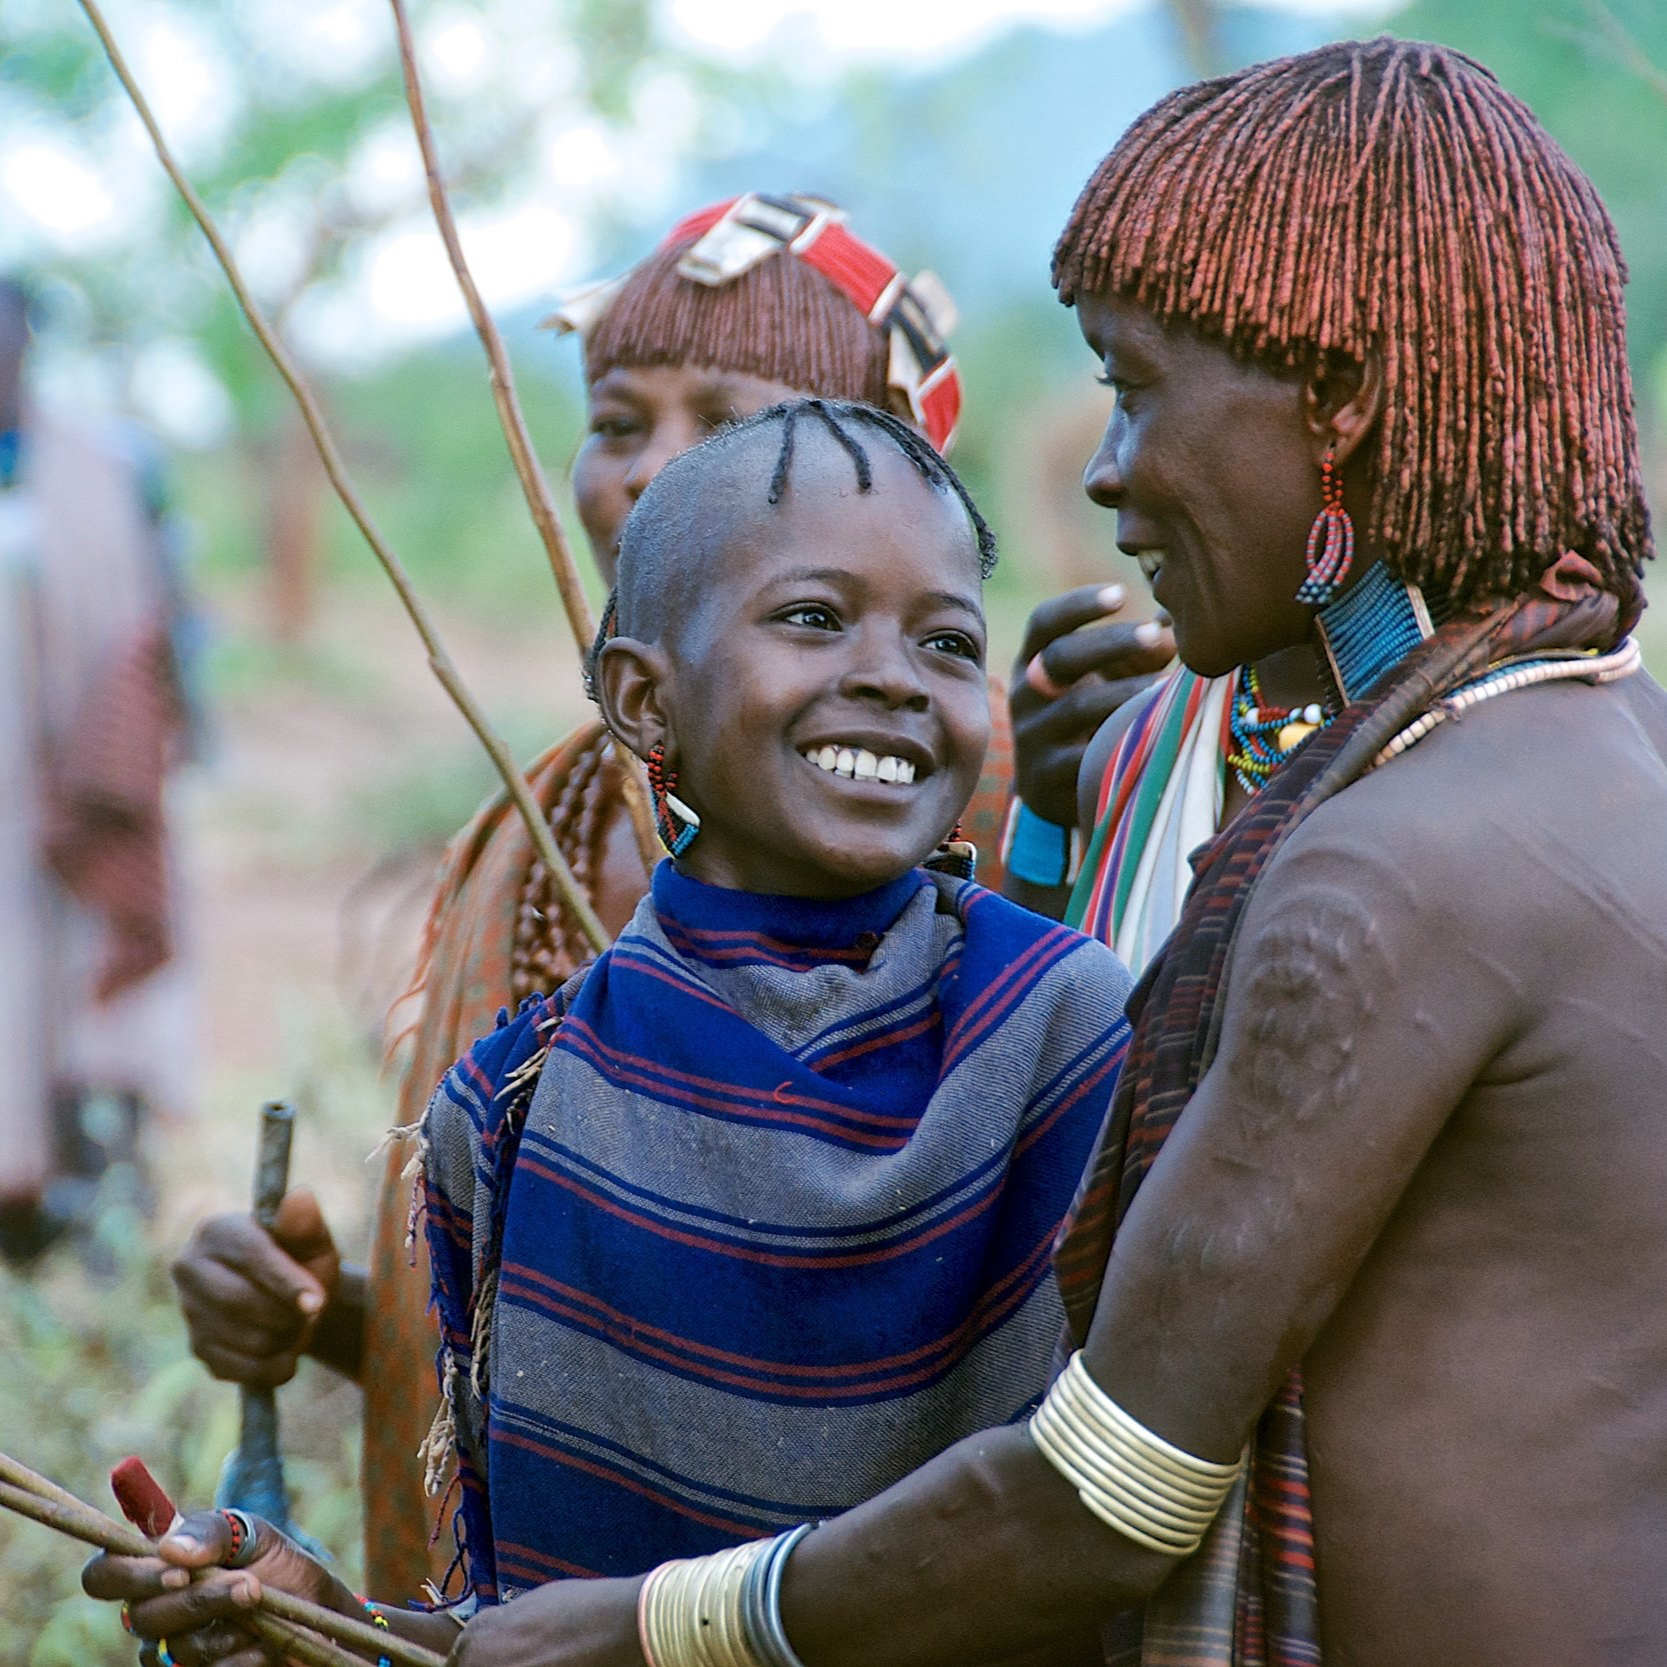 Tour to South Ethiopia - 10 DaysThe Ethiopian people and tribes have kept their culture and way of life over centuries. This package will give you the opportunity to interact with local and indigenous tribes and get an insight into how they live and their unique culture.10 days of breathtaking and exciting sites will leave you satisfied and informed about the history of Ethiopia and its people.$2,100NEXT GROUP TOURS!October 1st - November 1st - December 1st